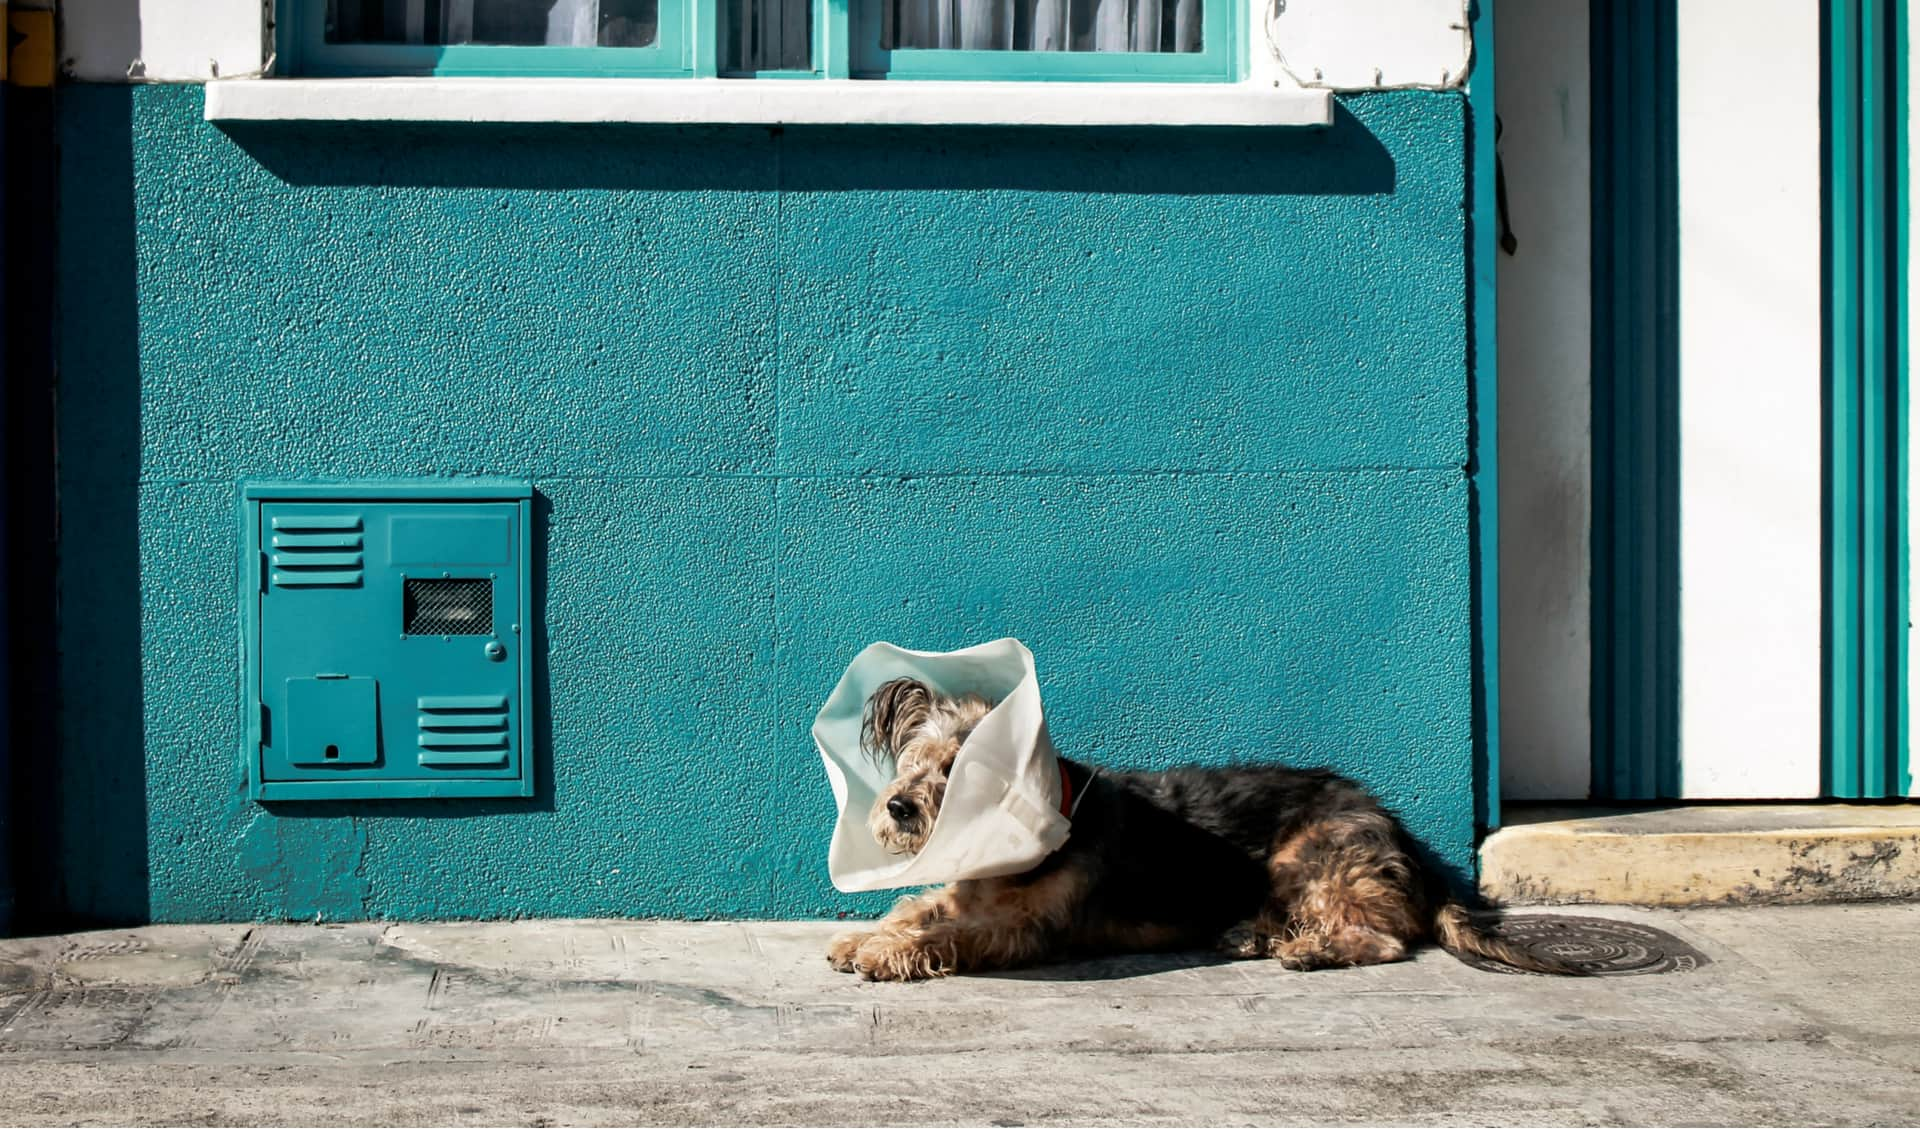 Dog lying in the street with a medical cone.